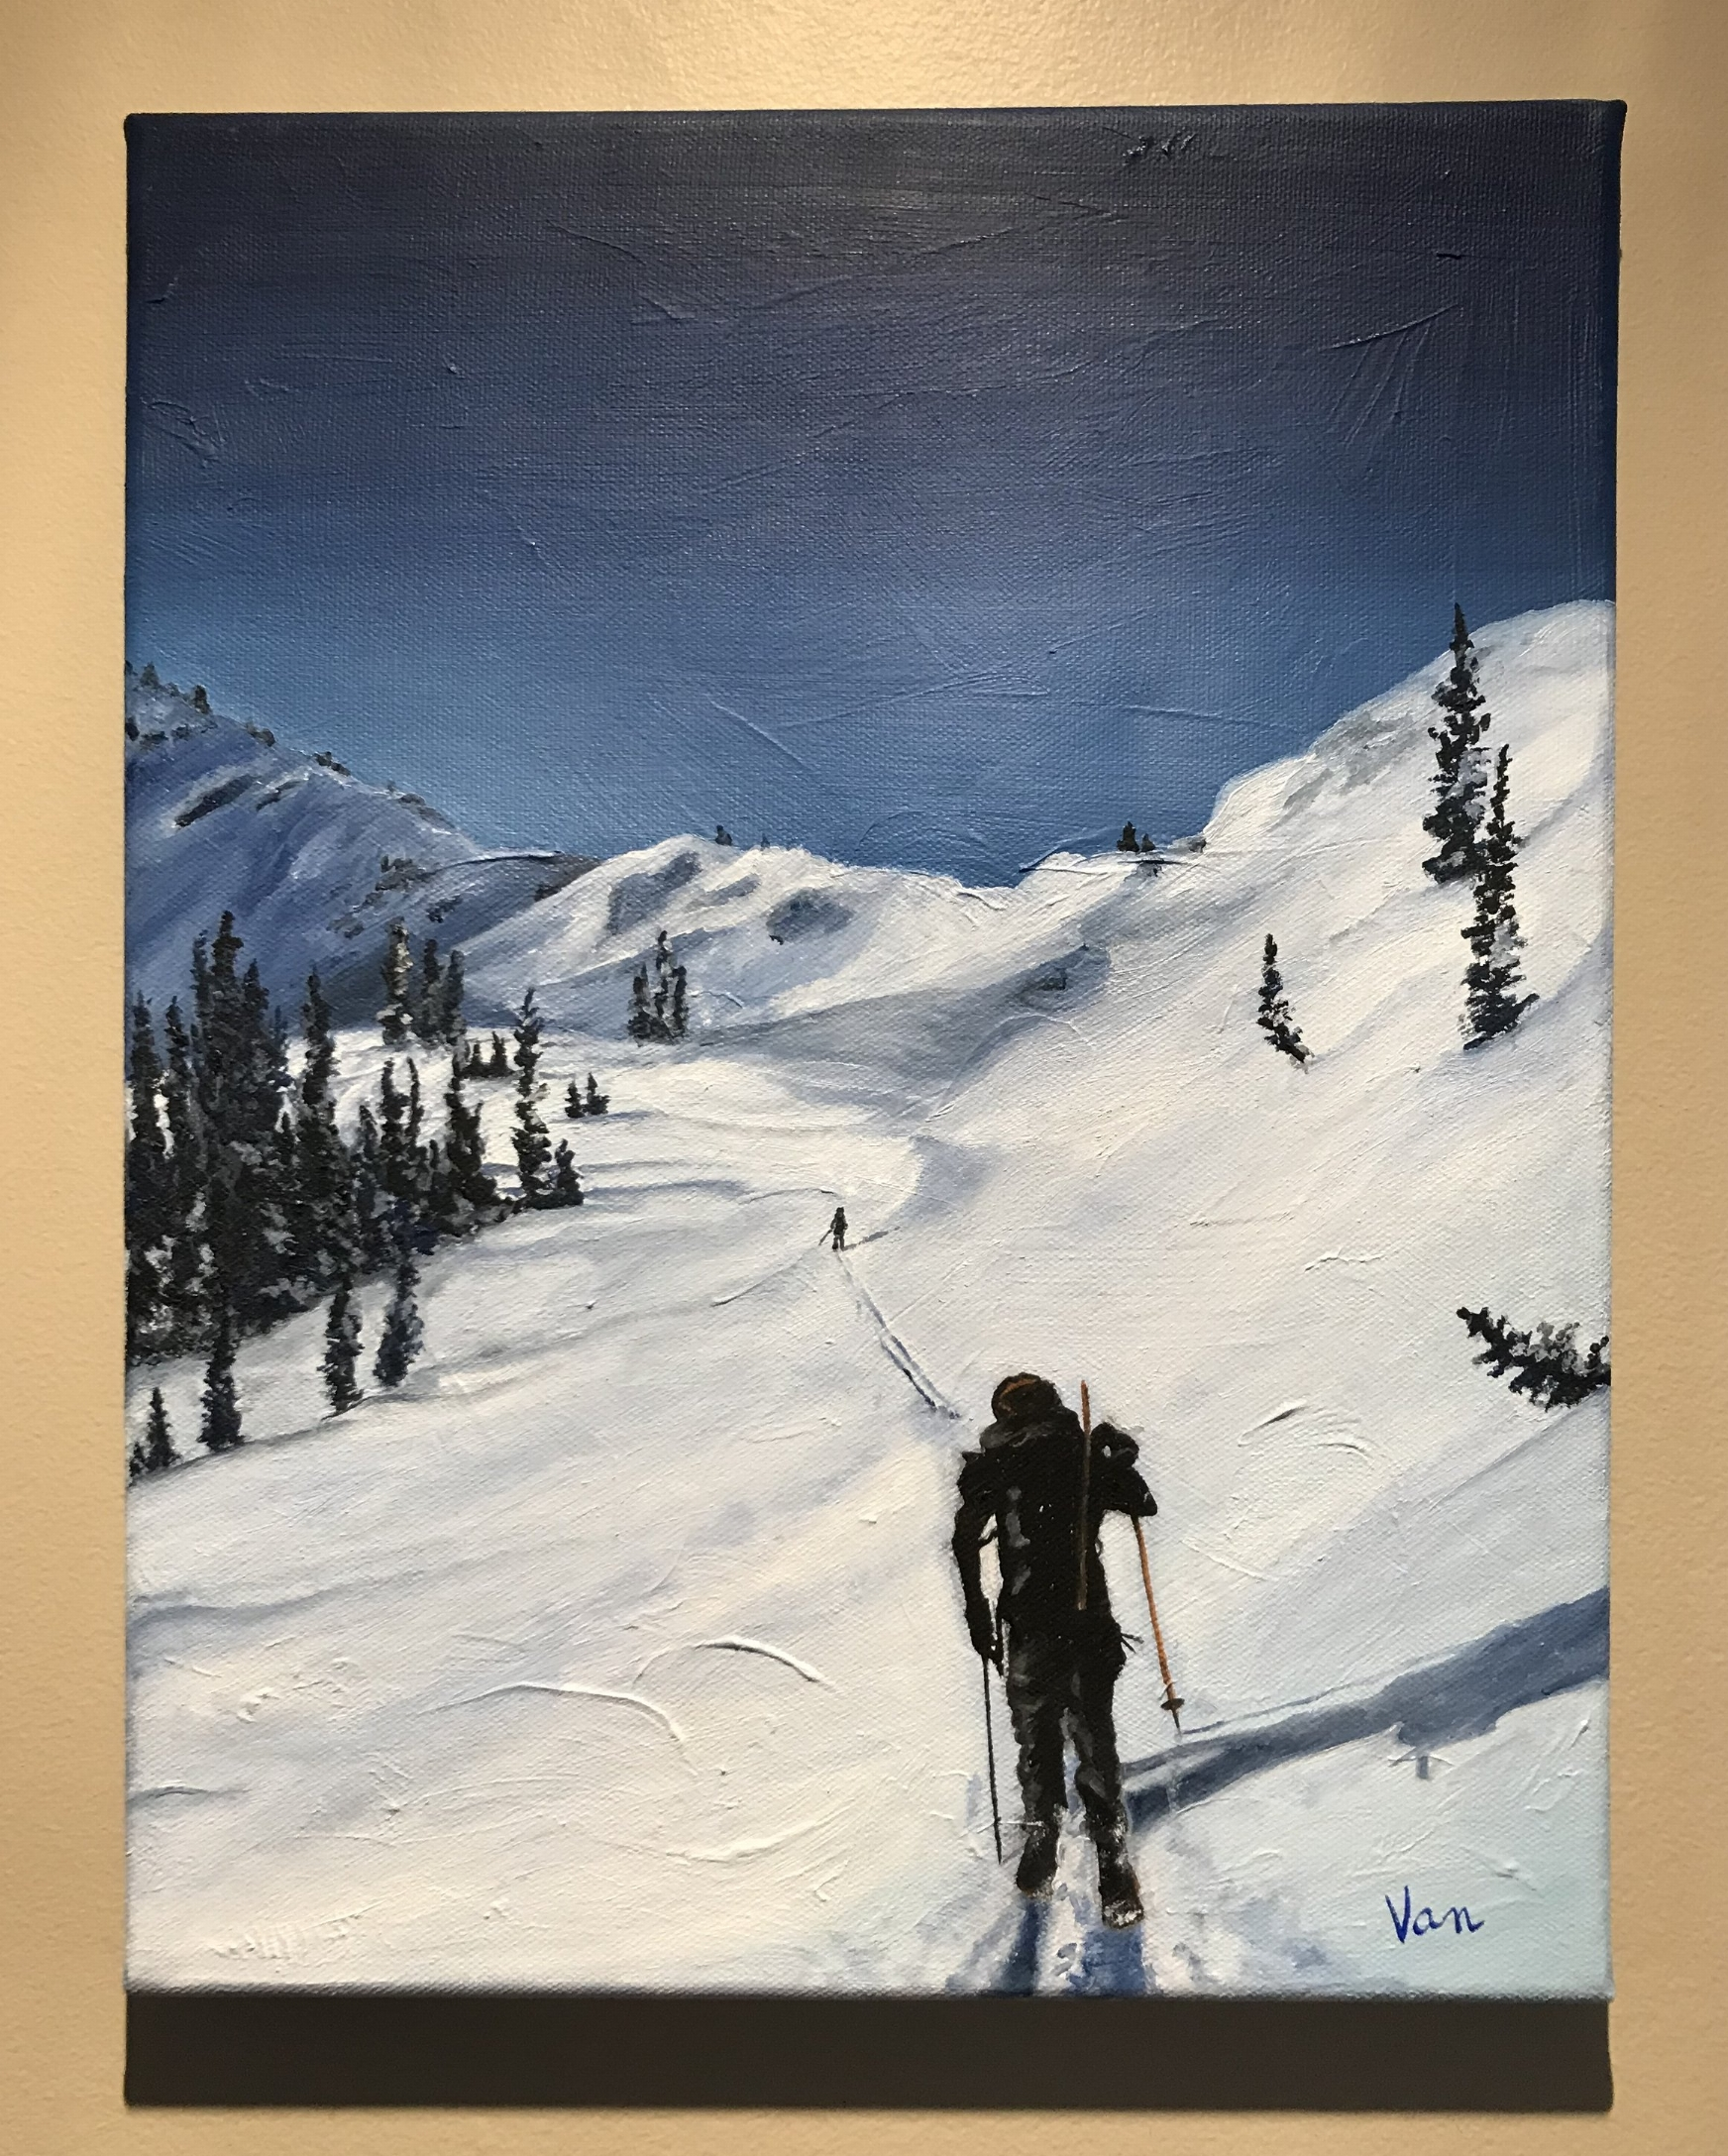 Ski Touring - Oil on canvas.Depicting a touring day in the Bonnington Range in the Kootenays, BC.